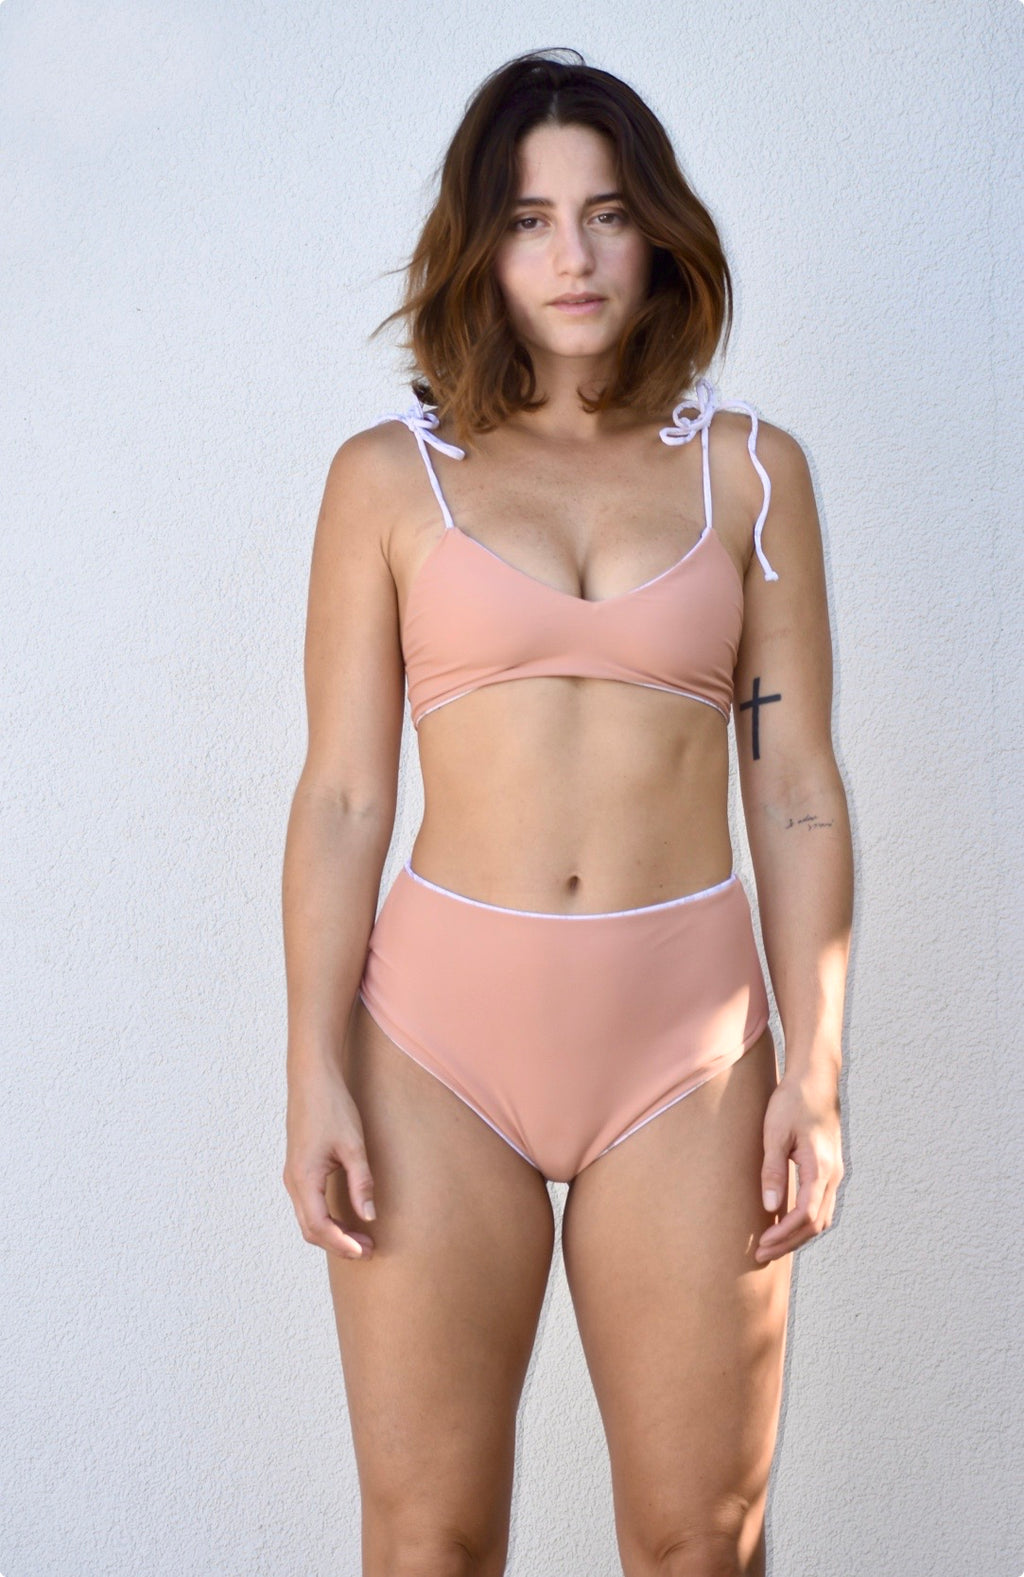 Bayamon Drop-down Bottoms - Reversible - Shark Bite  / Petal Pink